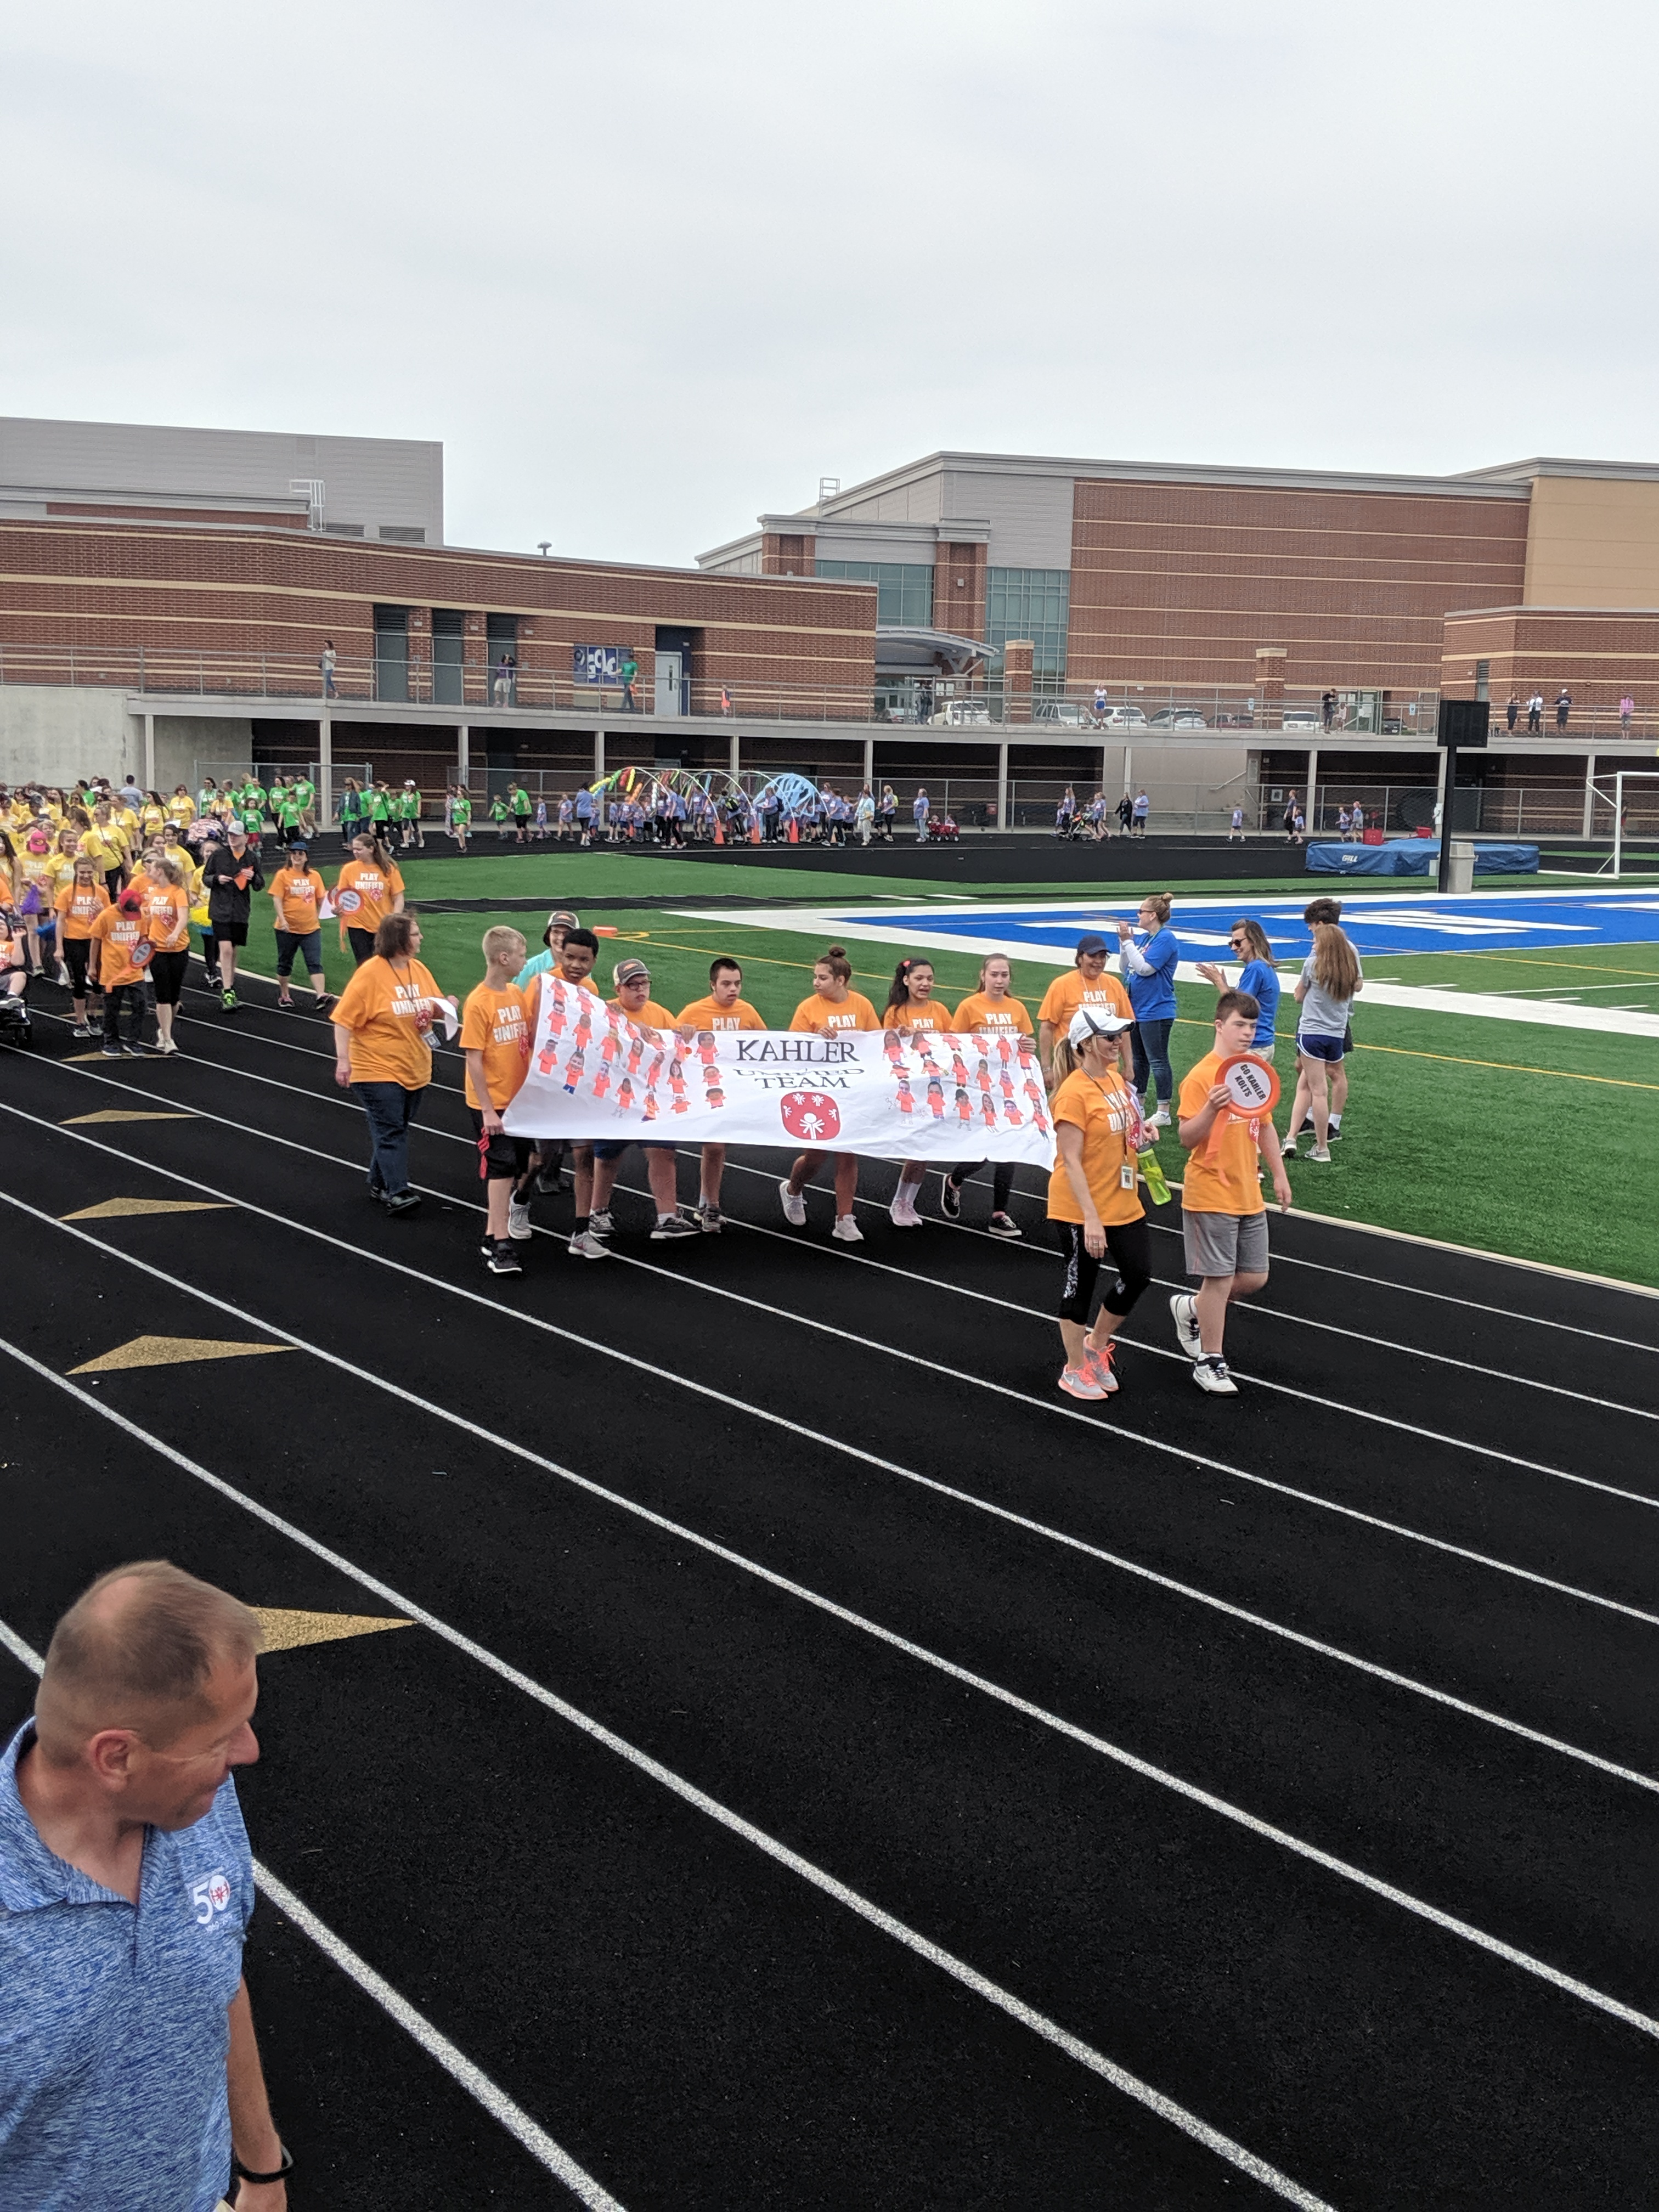 Student athletes parade around the track prior to the beginning of Lake Central's Second Annual Unified Game Day!